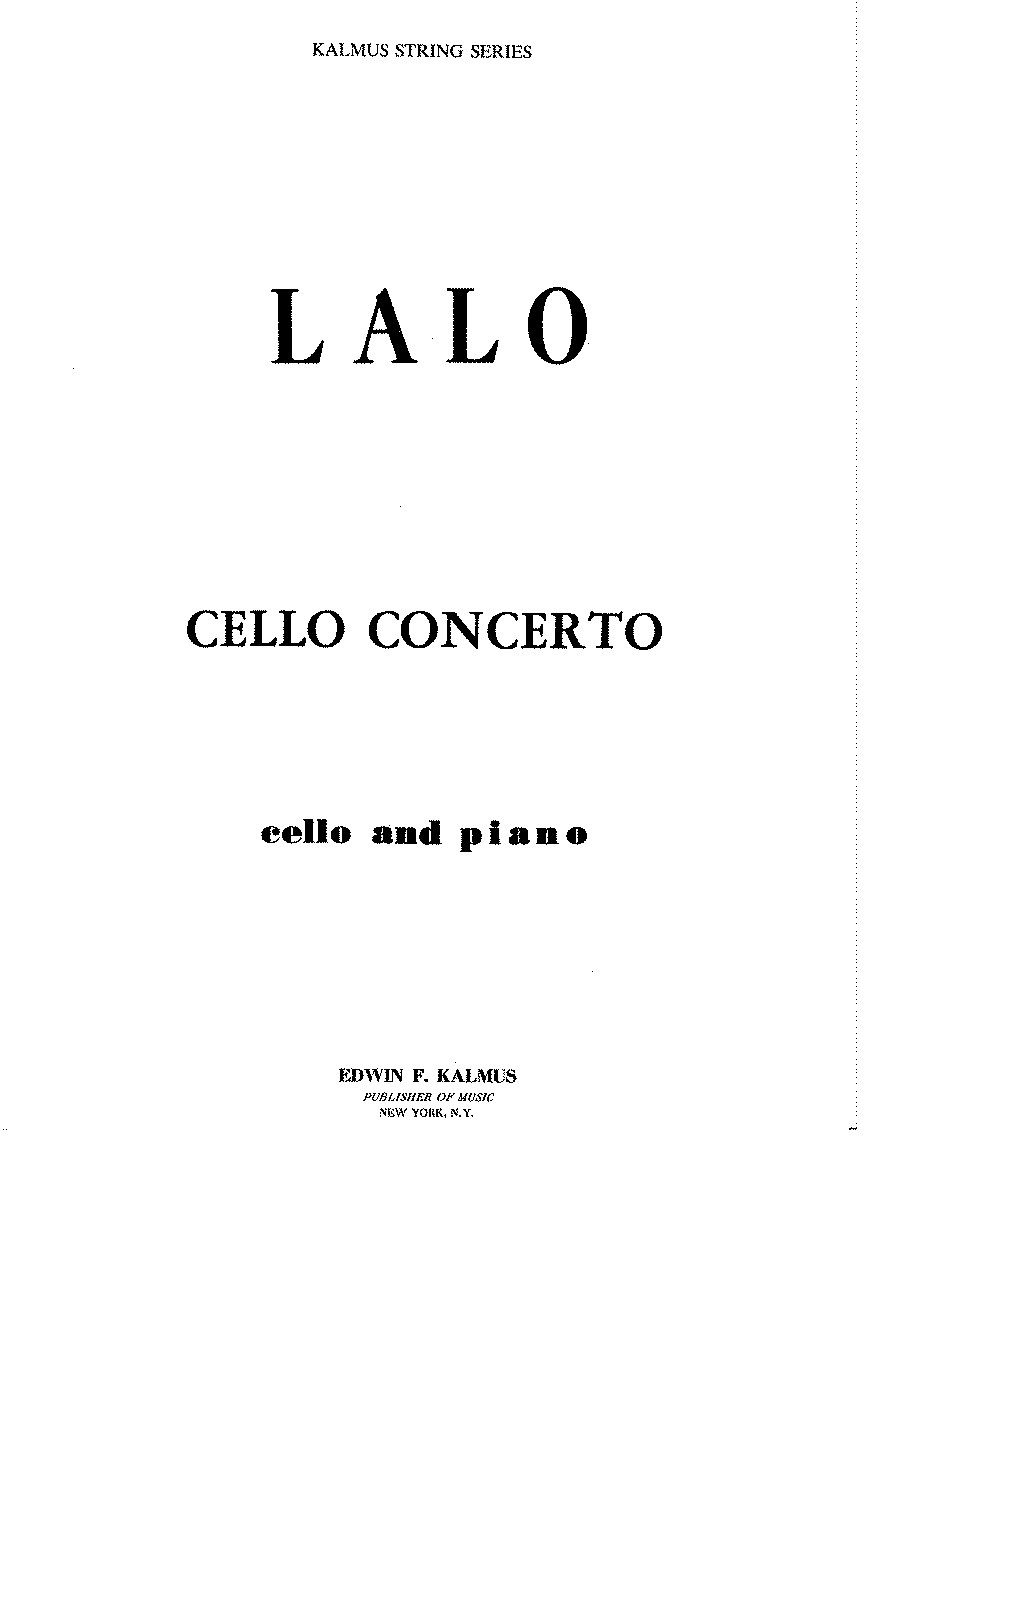 PMLP35142-Lalo reduction.pdf